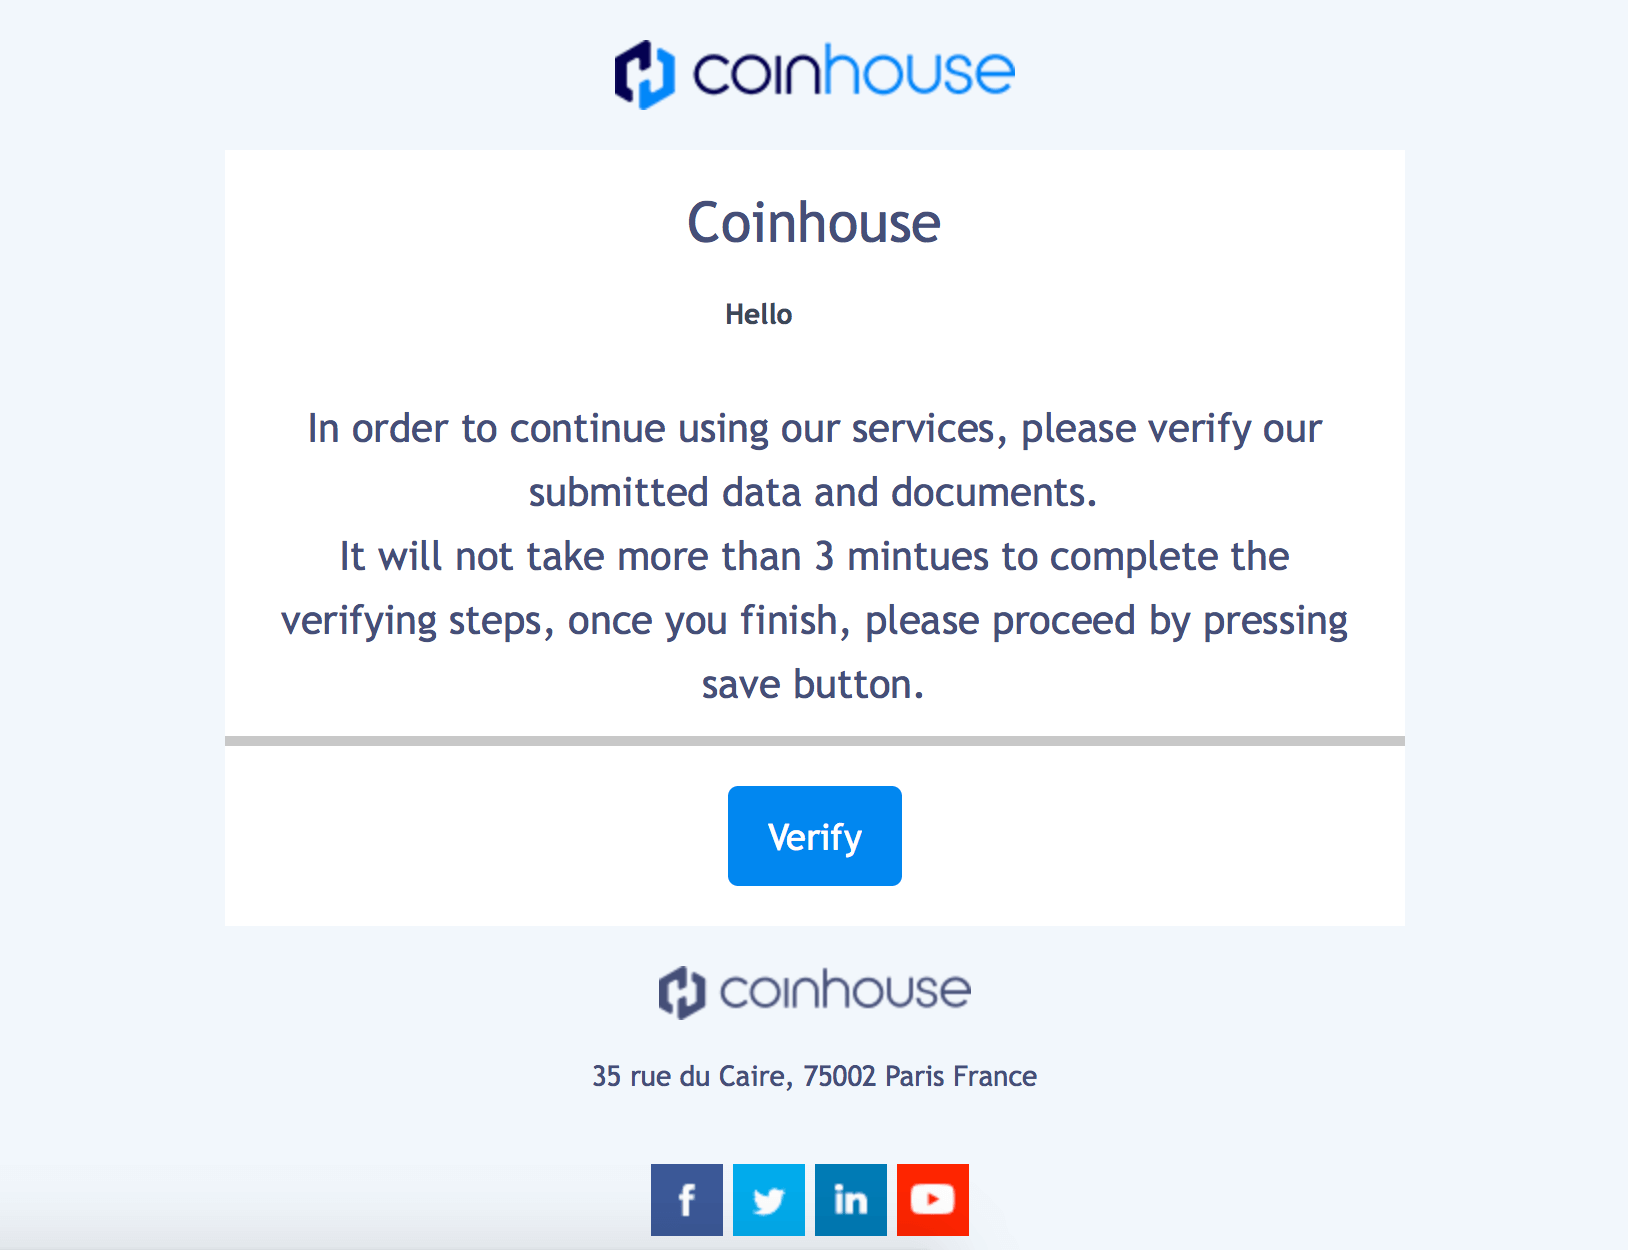 This French Exchange Has Become a Victim of Phishing Attack 2